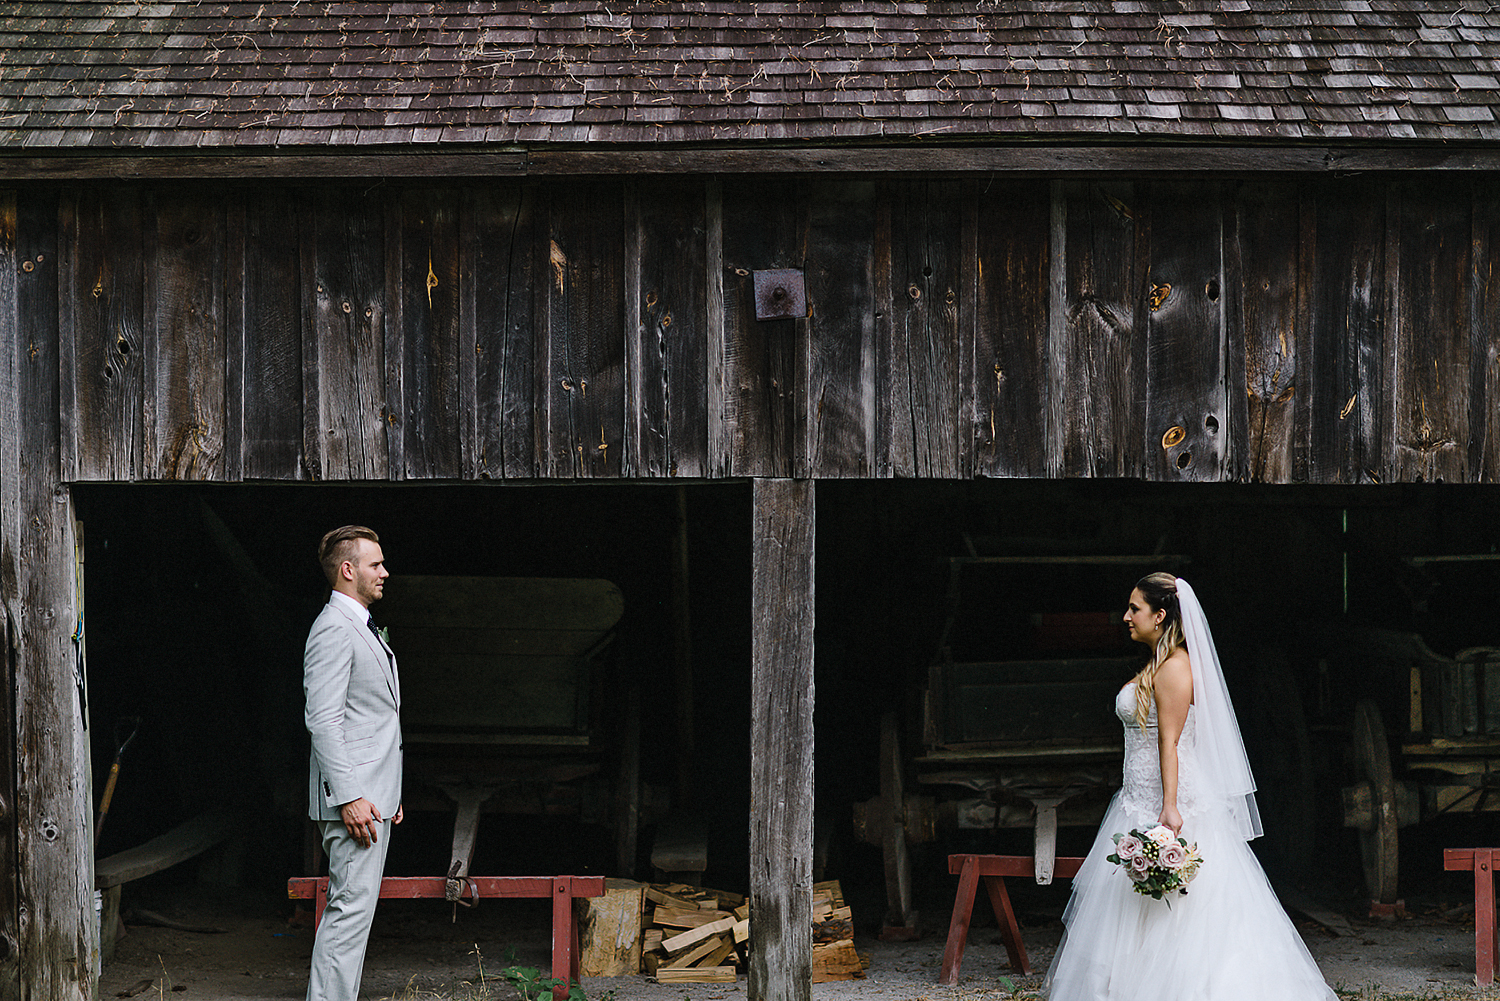 Toronto Ontario wedding photographer 3B Photography at Black Creek Pioneer Village intimate wedding portrait of groom and bride in a vintage rustic barn